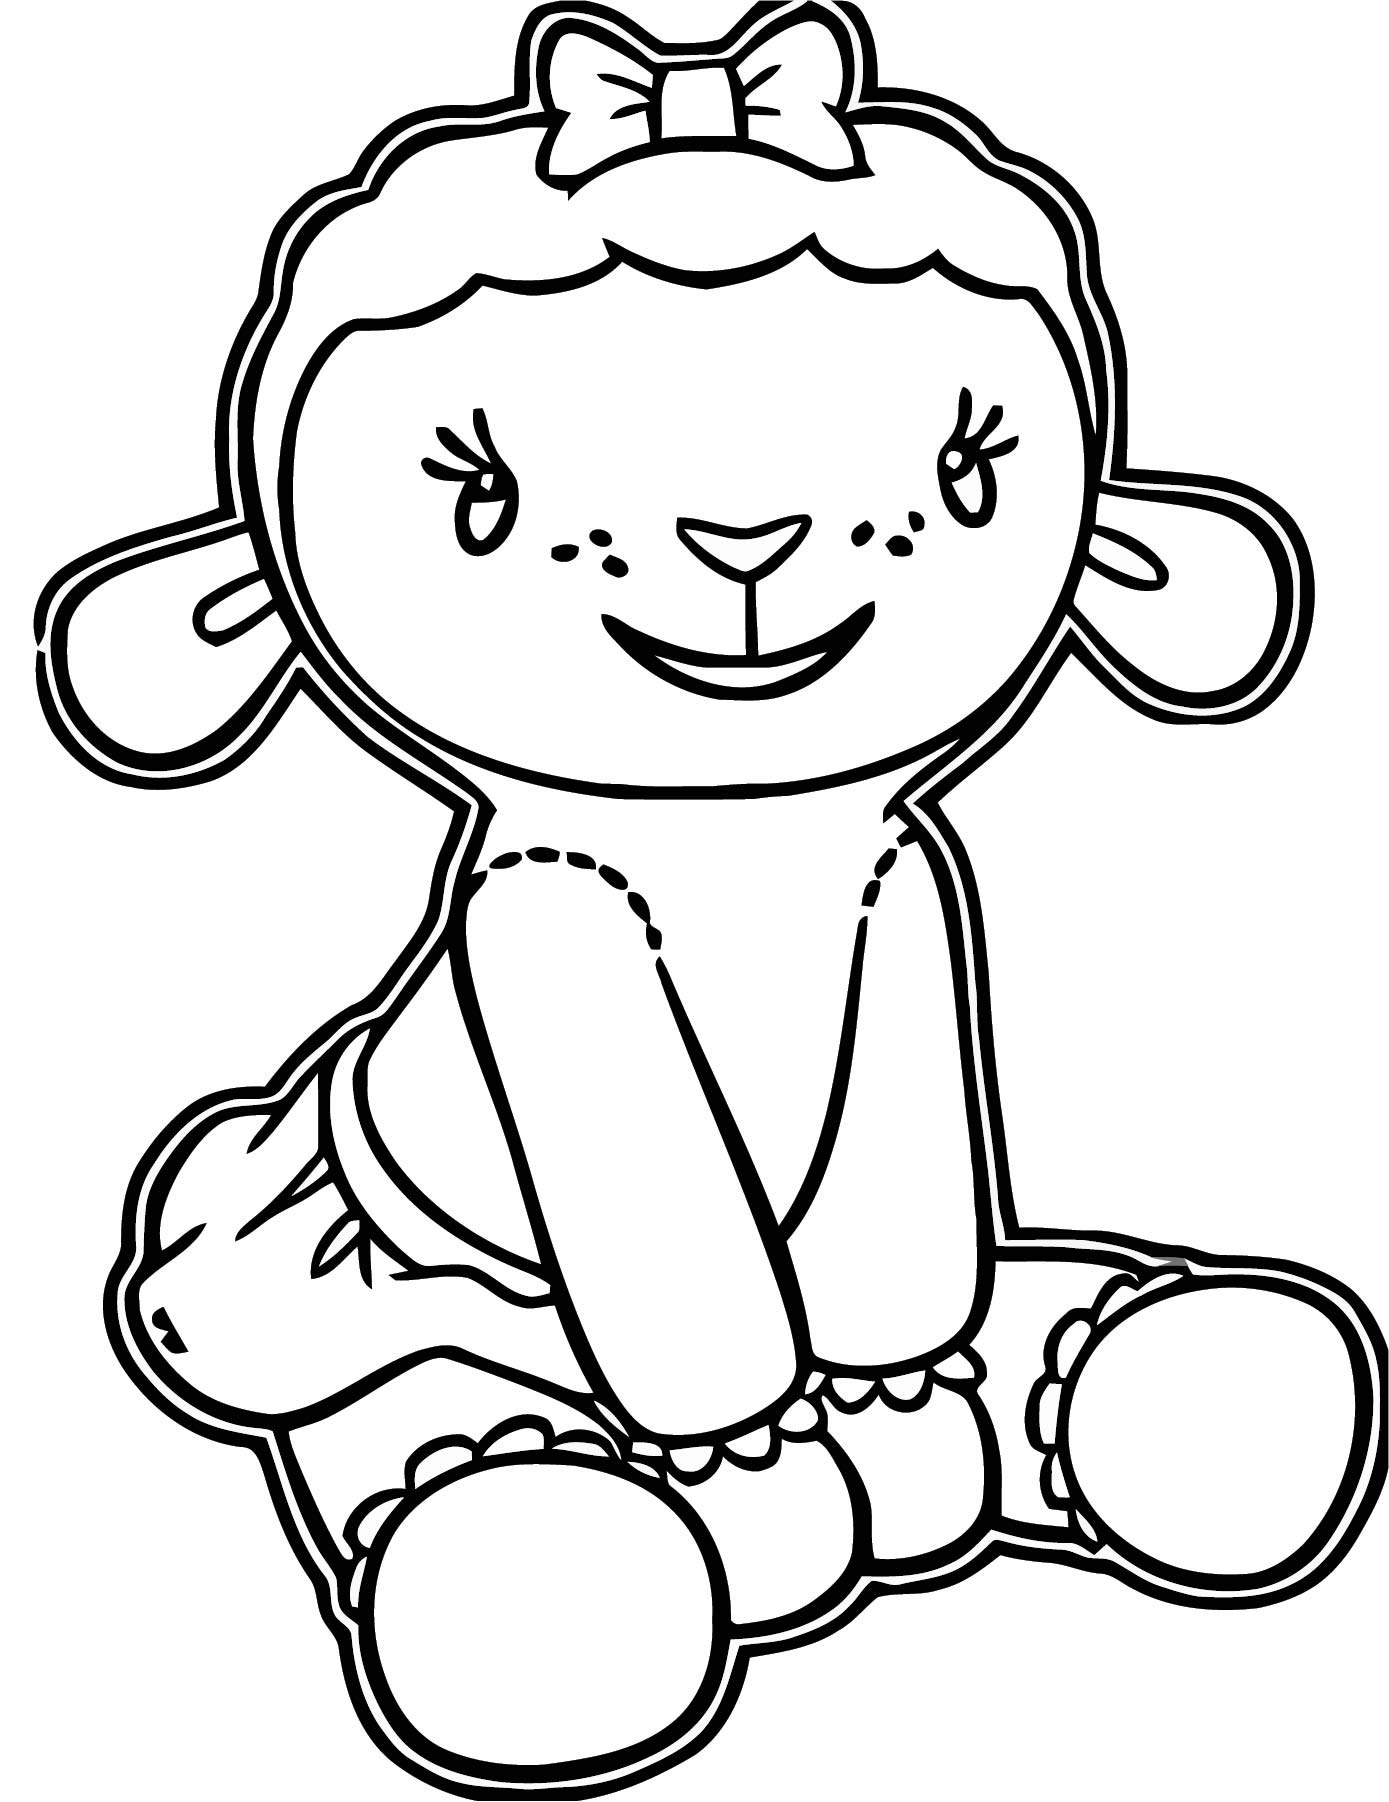 lambie stay doc mcstuffins coloring page